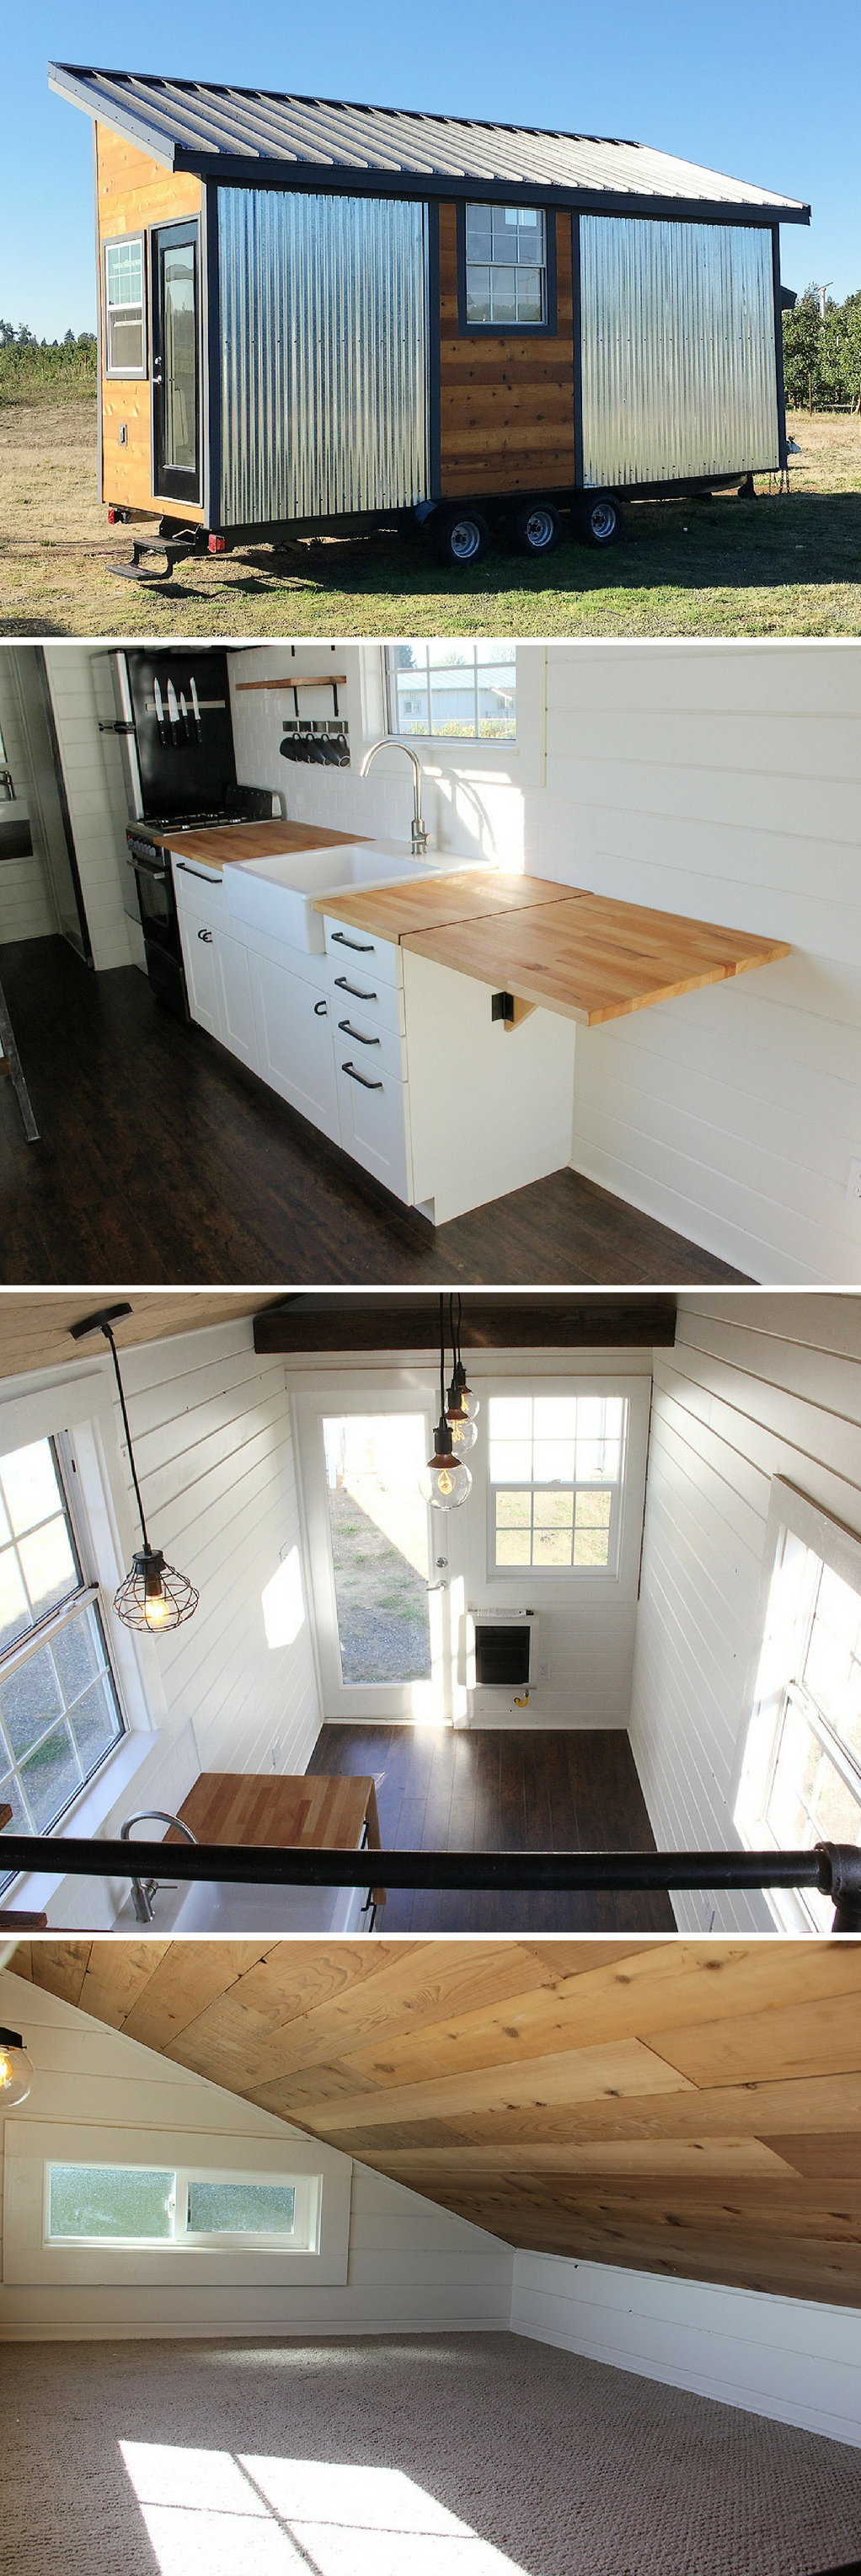 Rustic modern tiny house available for sale in Bellingham WA